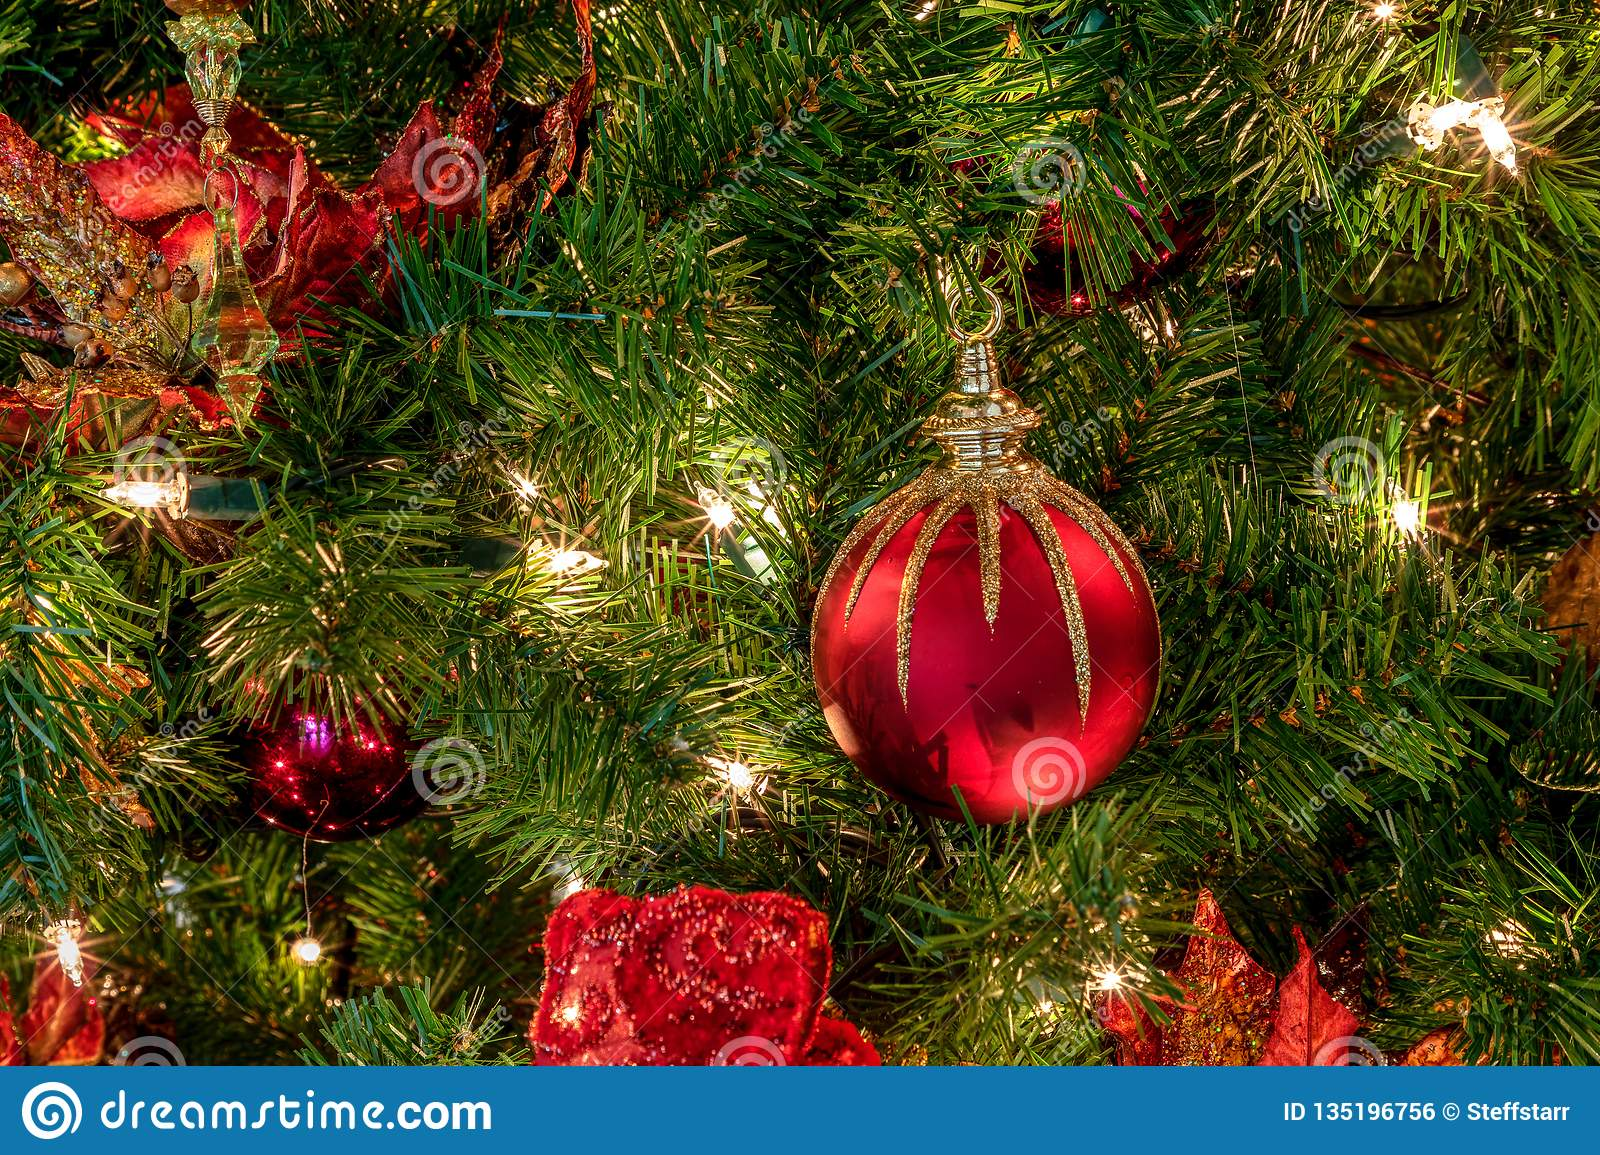 Red And Green Ornaments On A Christmas Tree With White Lights Stock Photo - Image of green ...